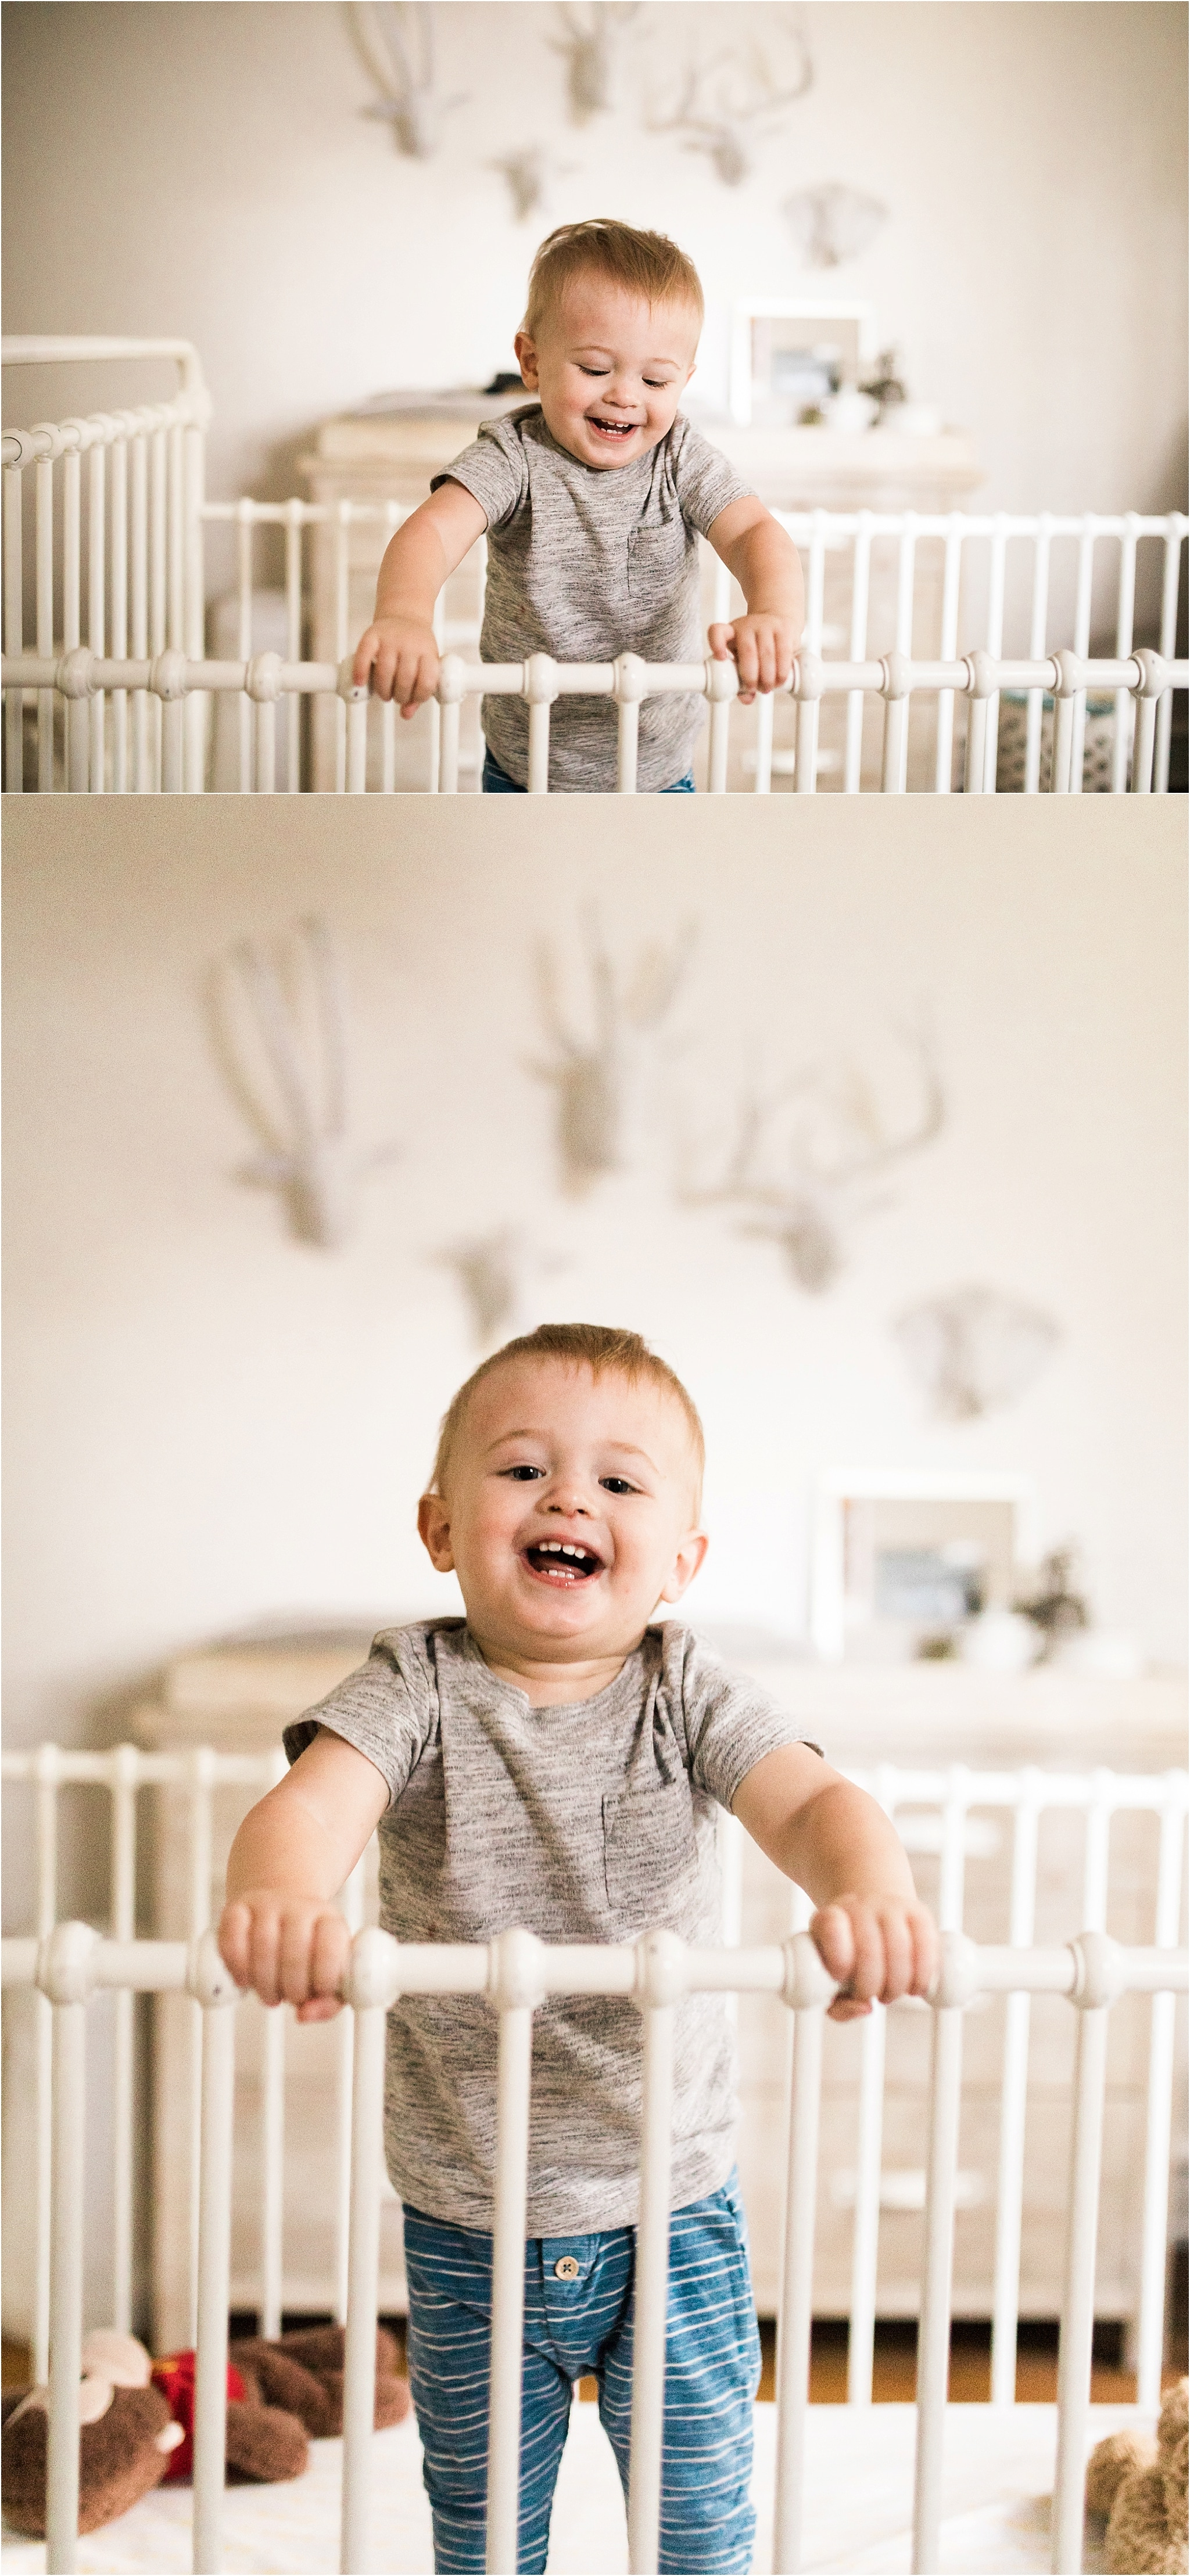 one year old boy jumping in crib